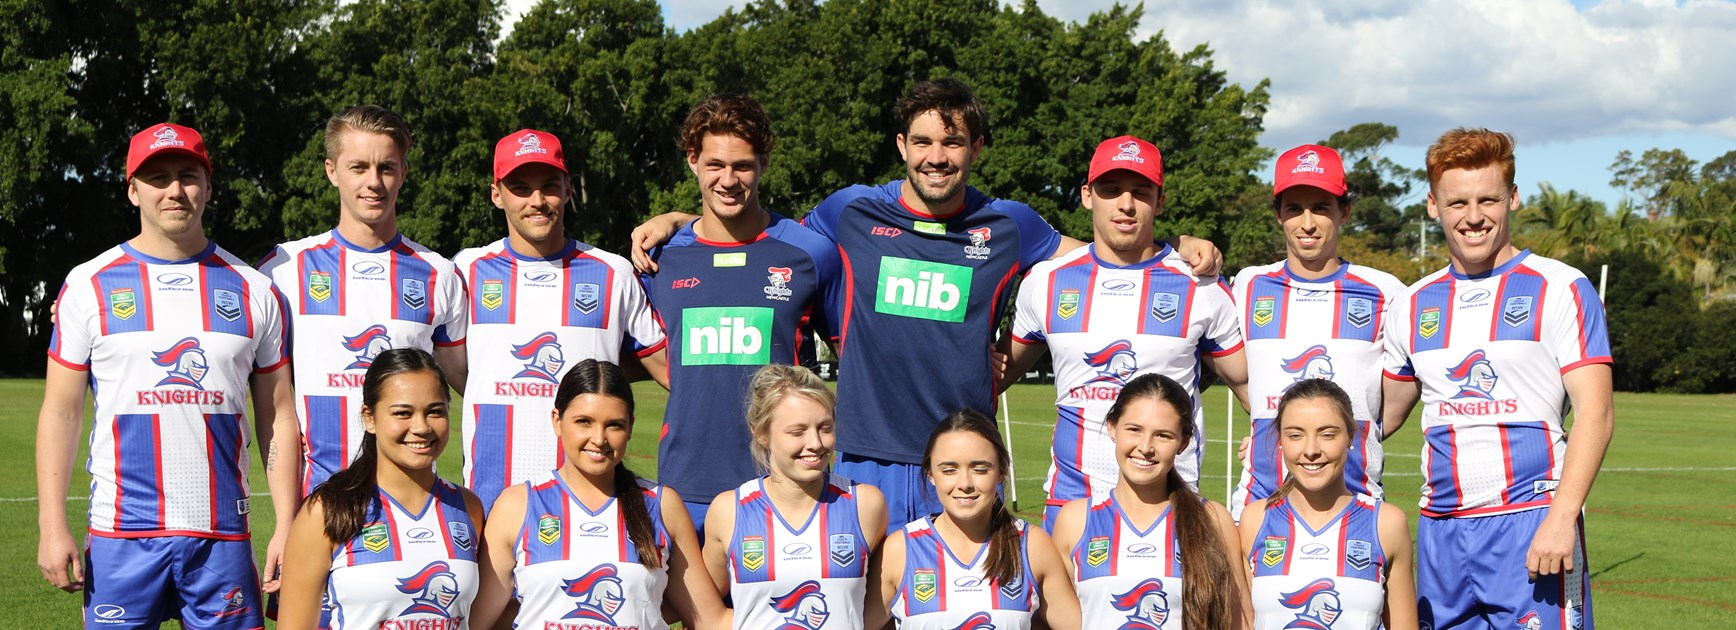 Knights launch touch football teams